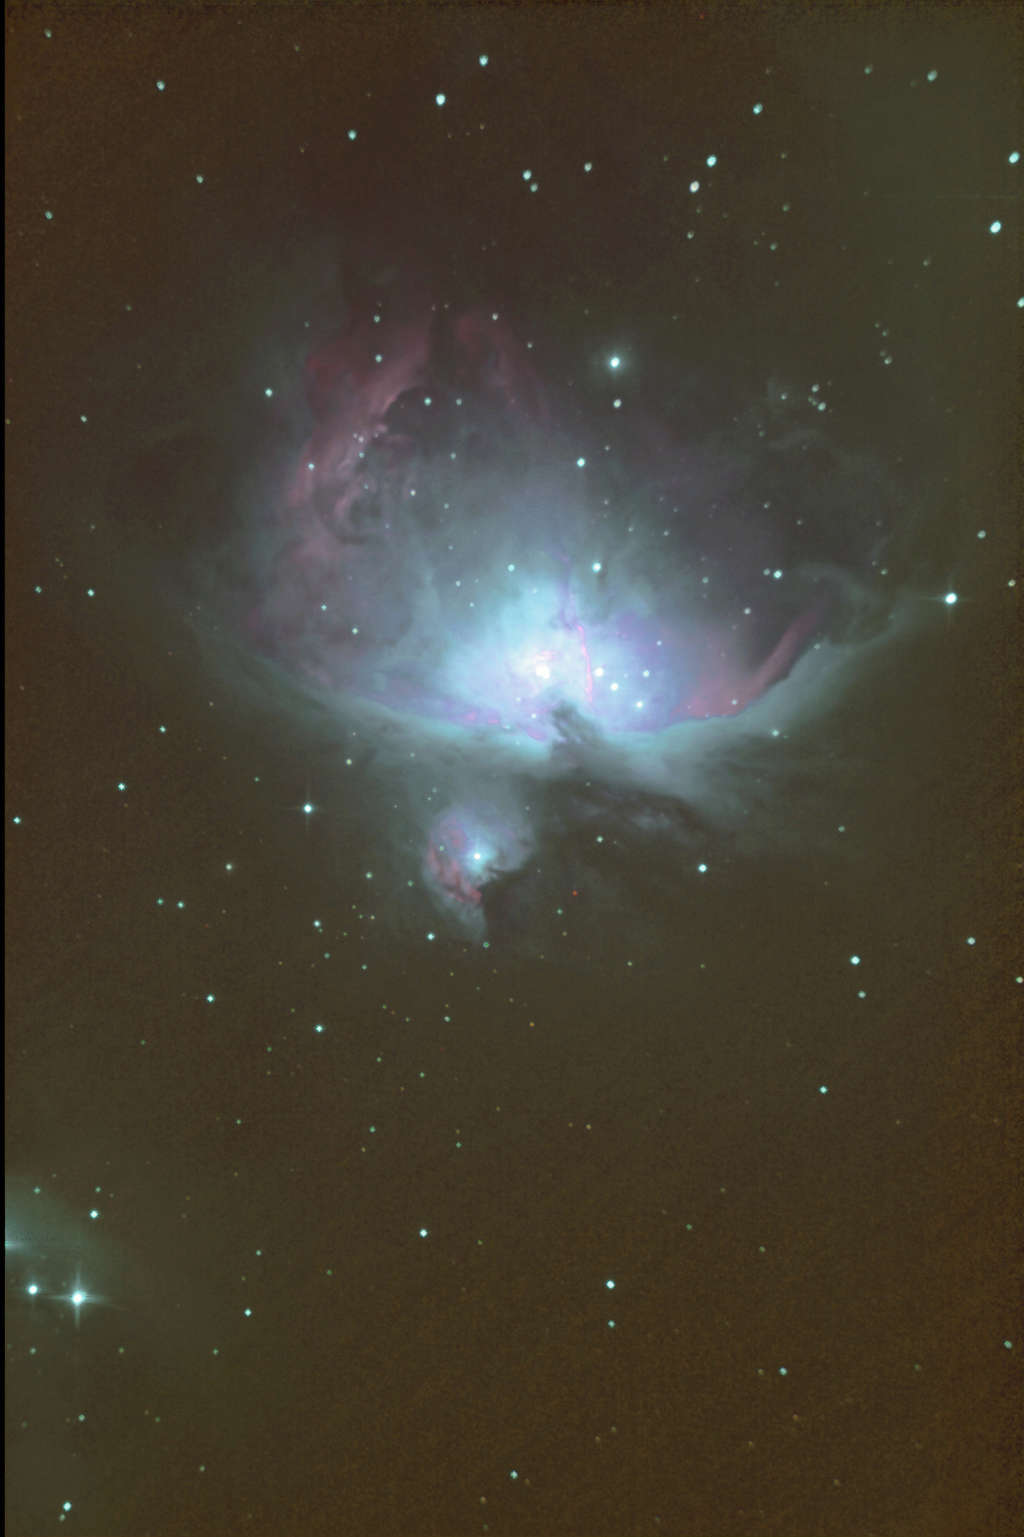 test newton 254 m42 240 x10s Orion10